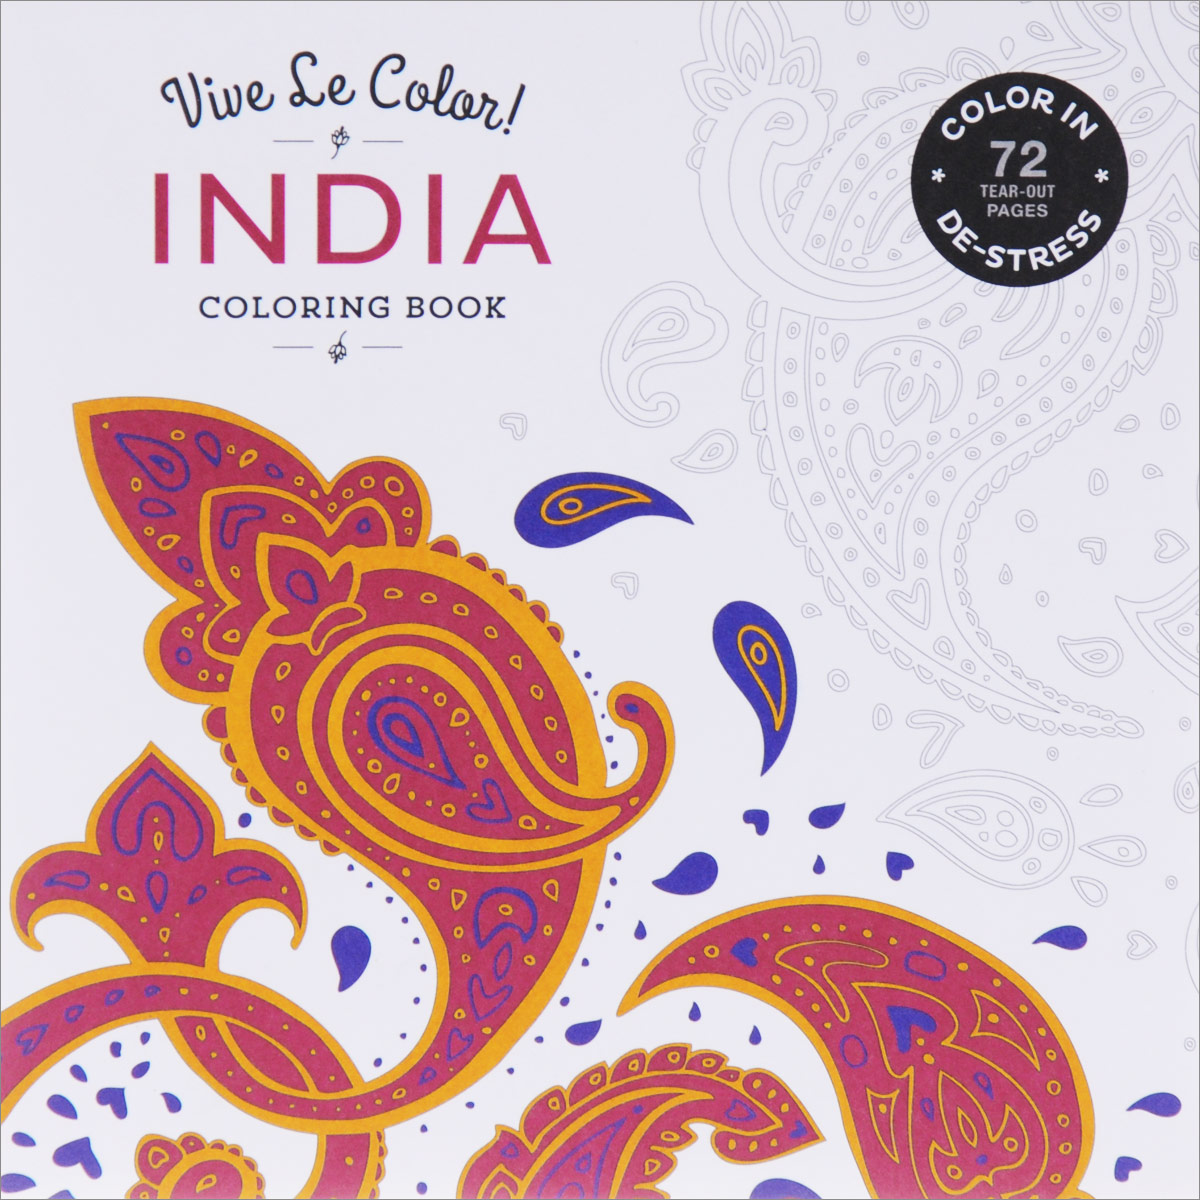 India: Coloring Book fashion a coloring book of designer looks and accessories